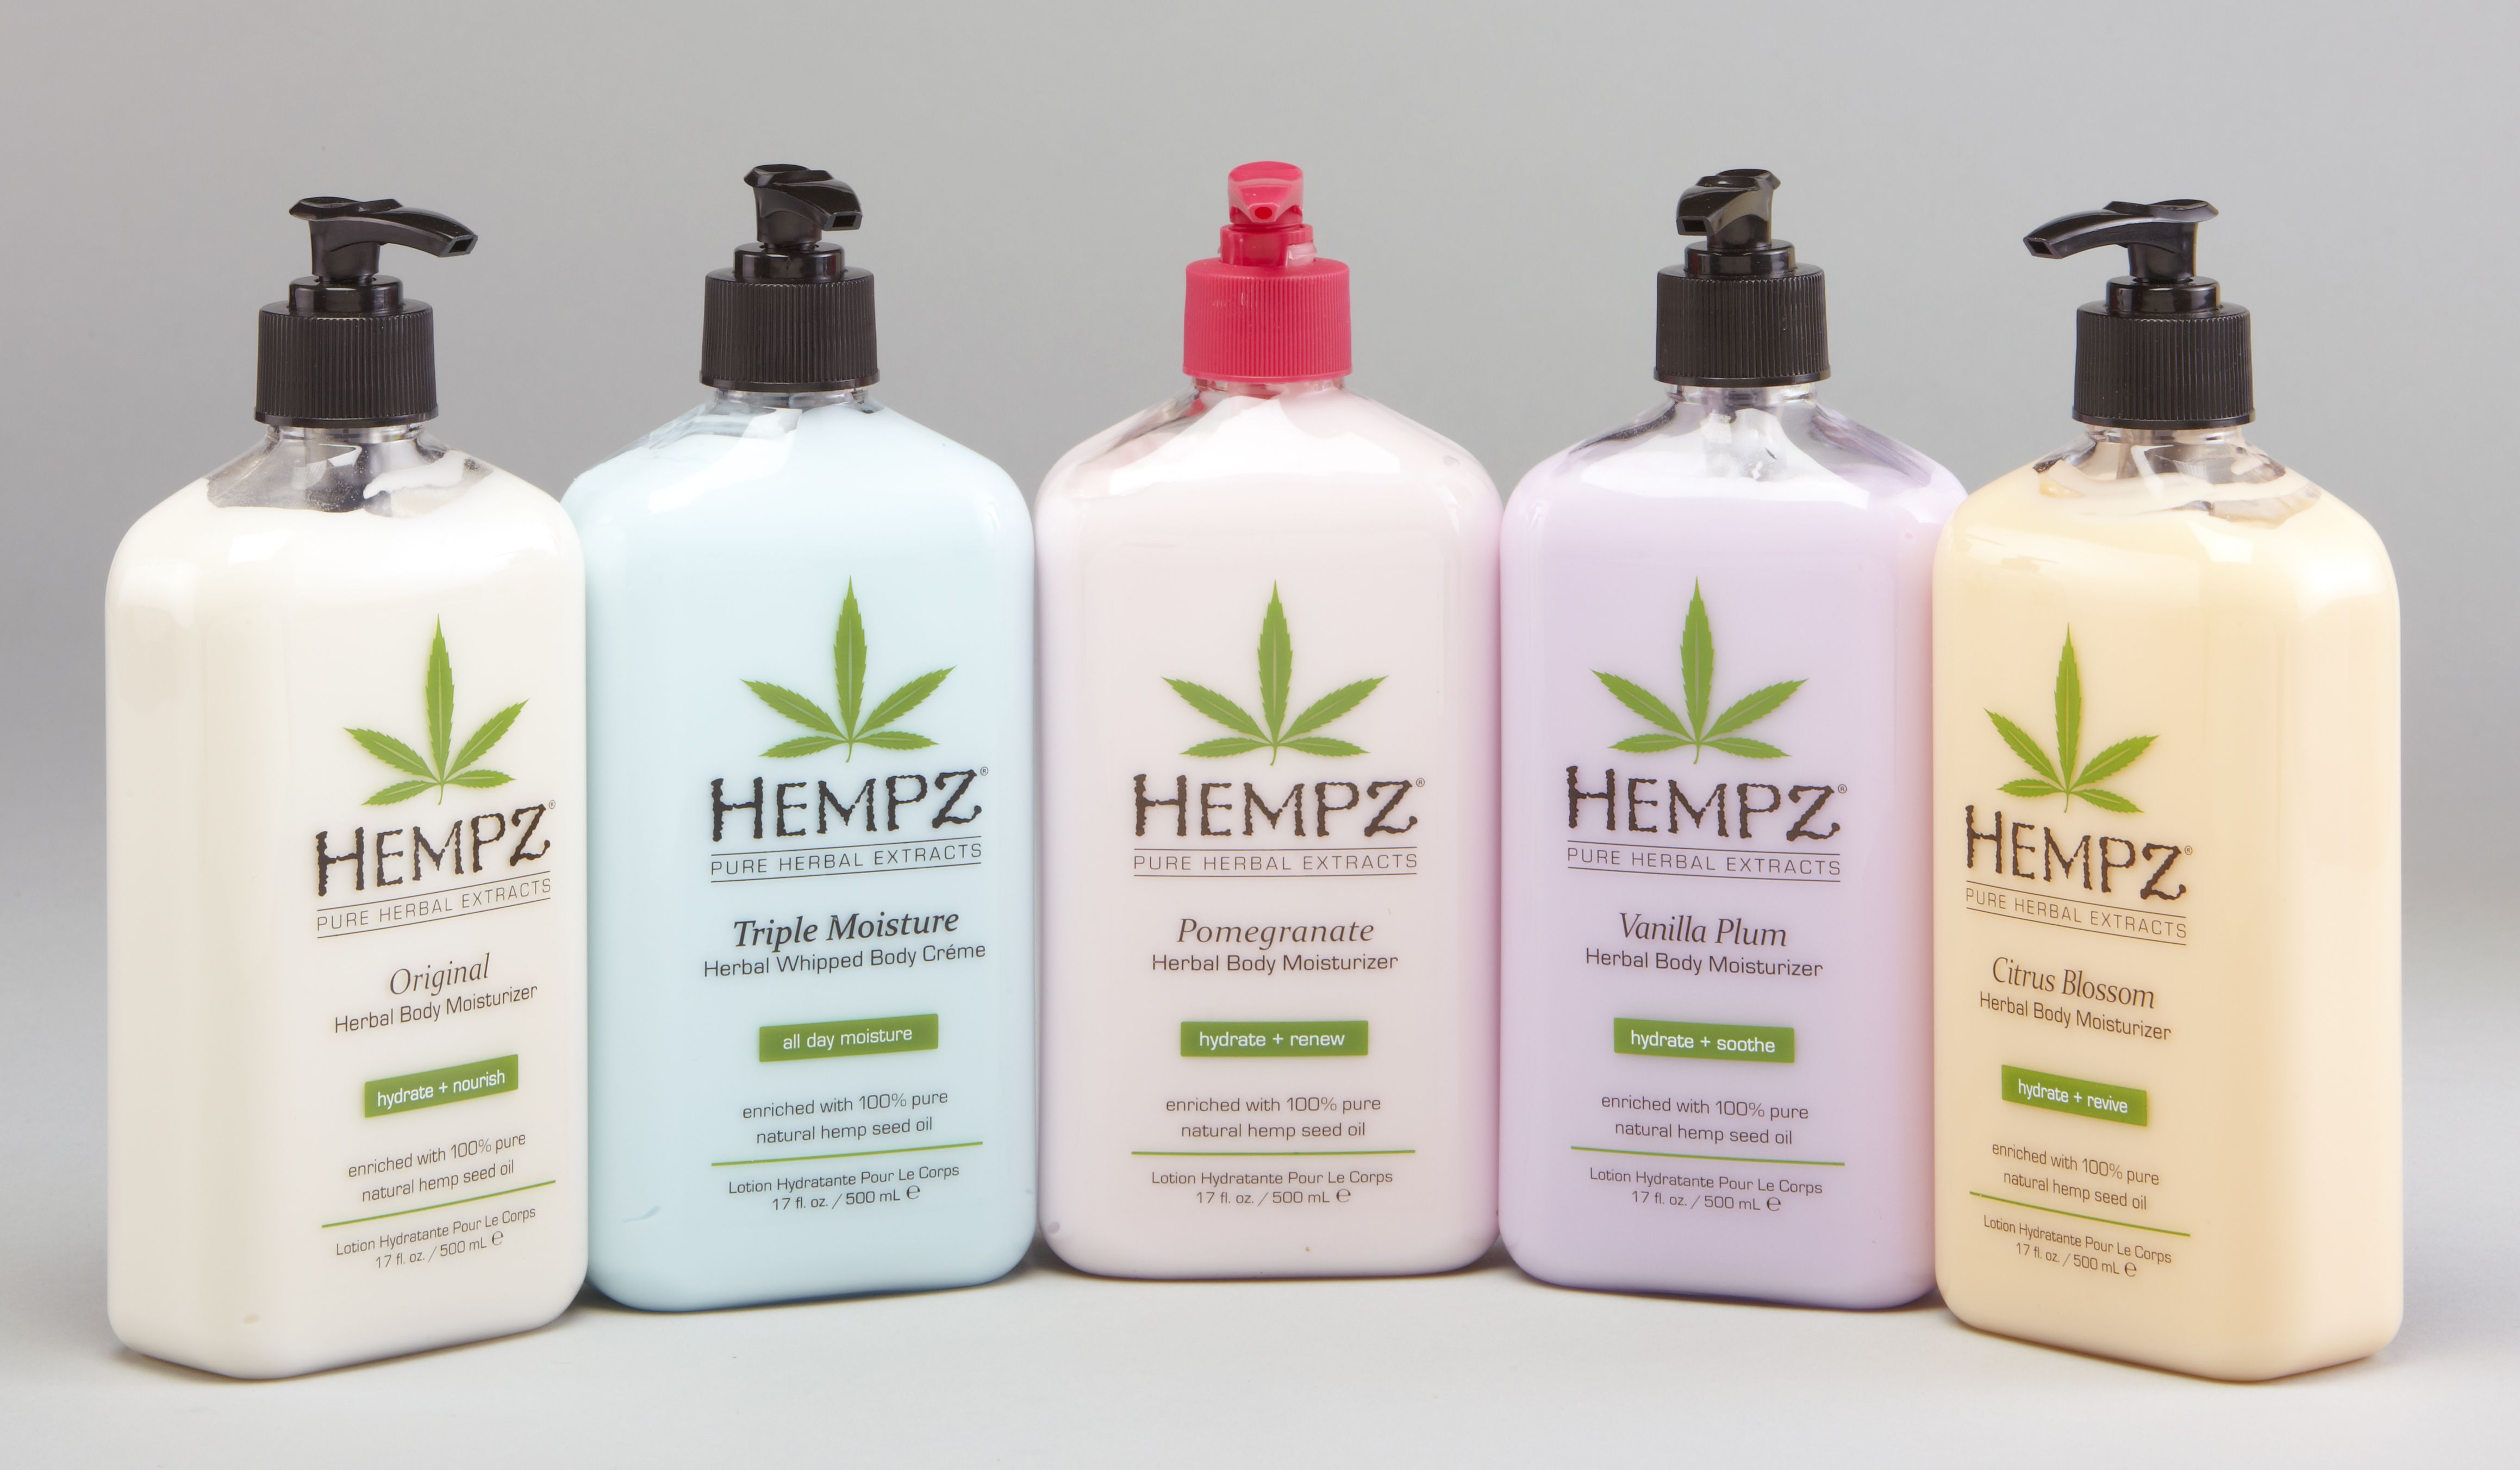 Hempz Pure Herbal Extracts Hand Lotion Find At Any Cost Cutters Hair Salon